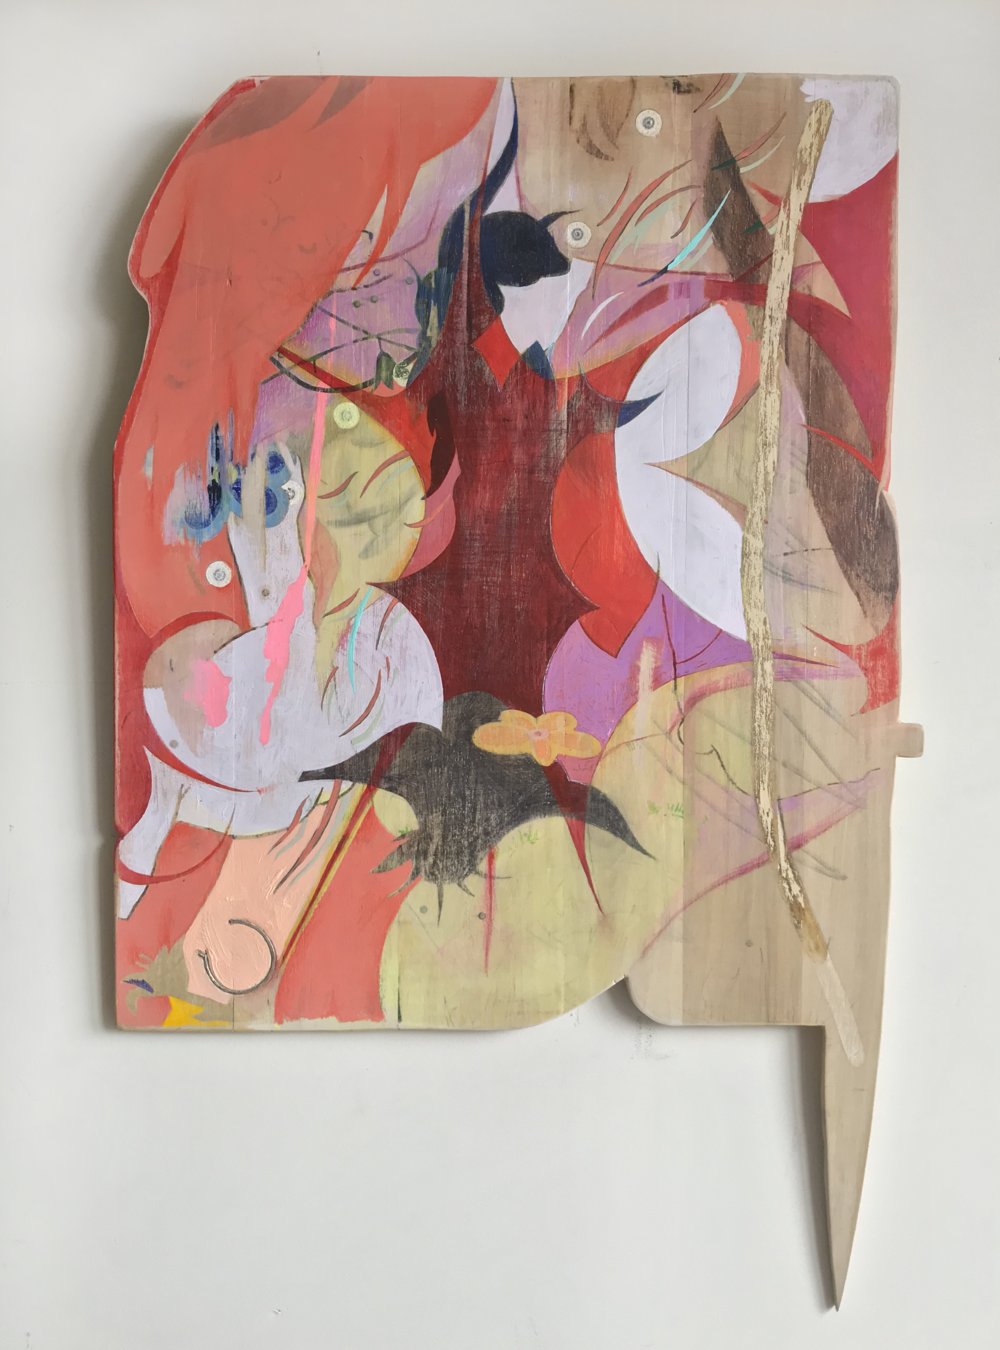 Touga Apologist  | acrylic, colored pencil, and earring from the 5th grade on board | 26 x 17 |2019